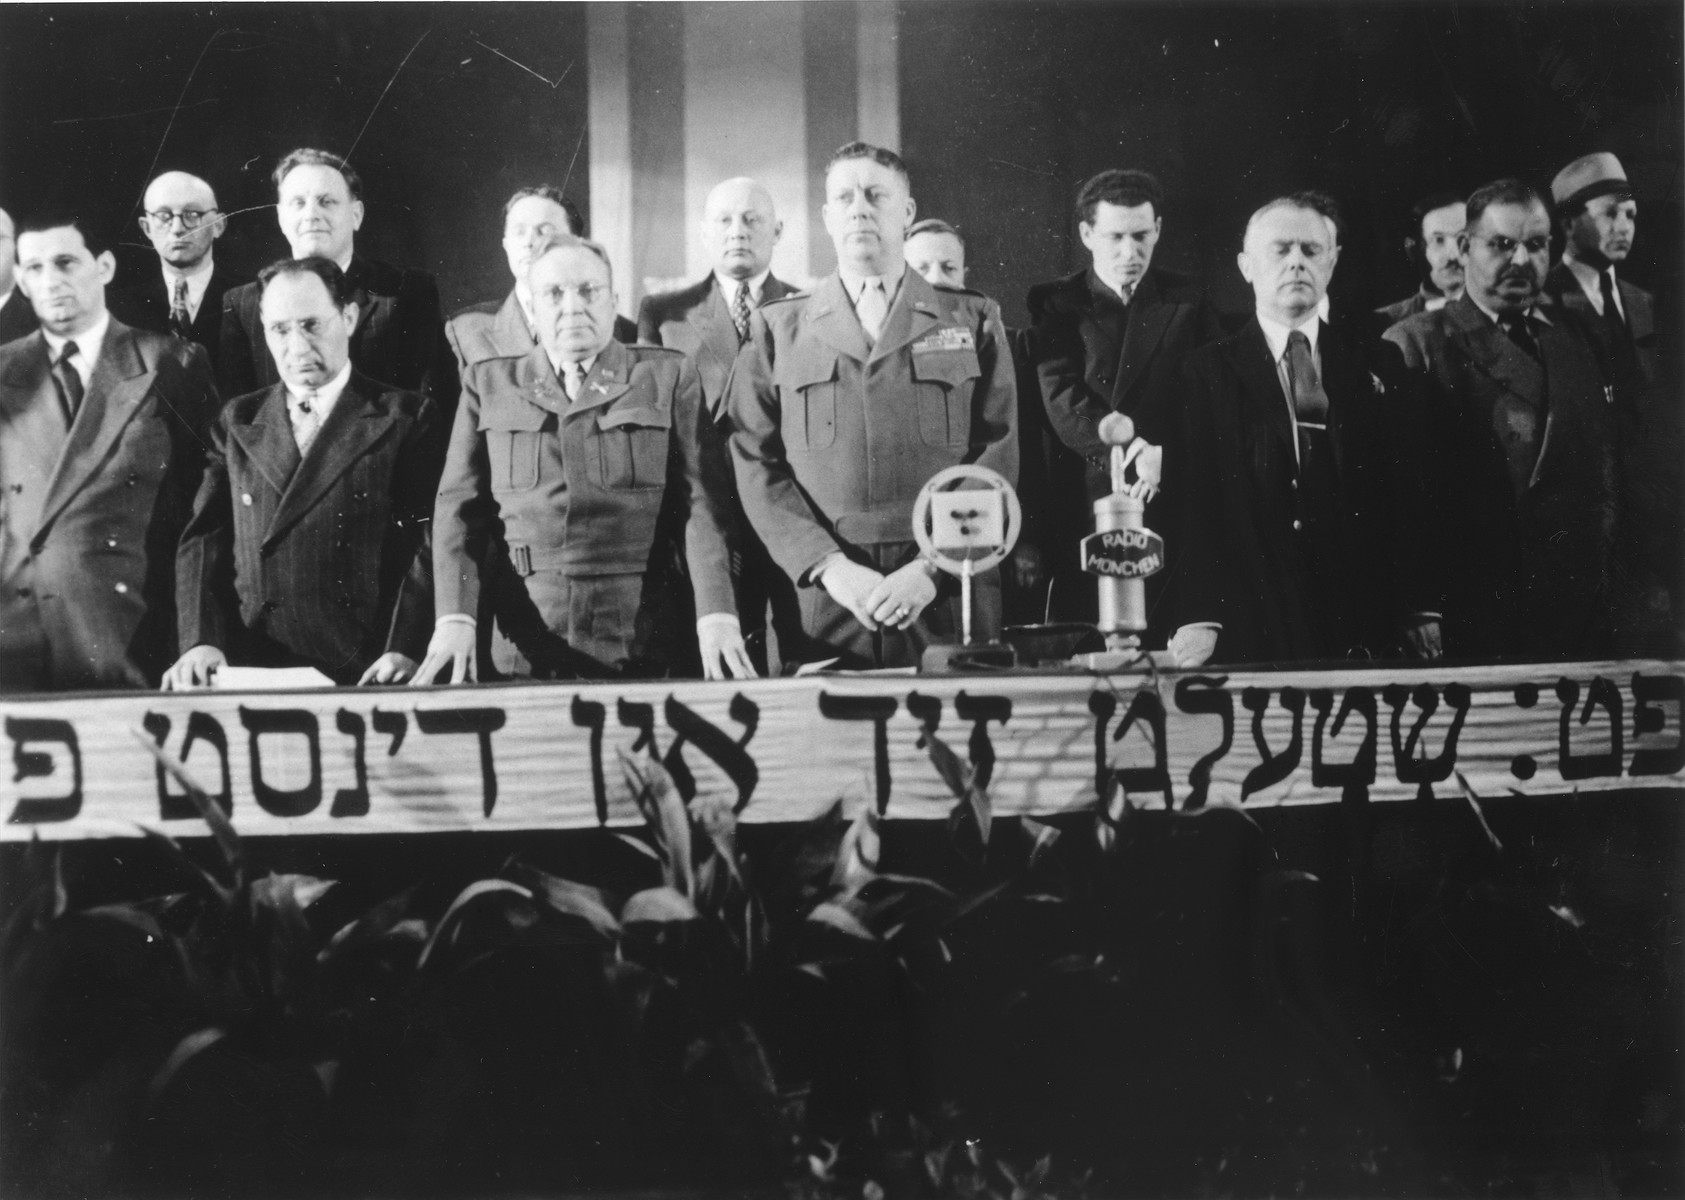 Speakers at the dais at the Third Conference of Liberated Jews in the US Zone of Germany.  Among those pictured is Philipp Auerbach (front row, right) and Joseph J. Schwartz (front row, left).